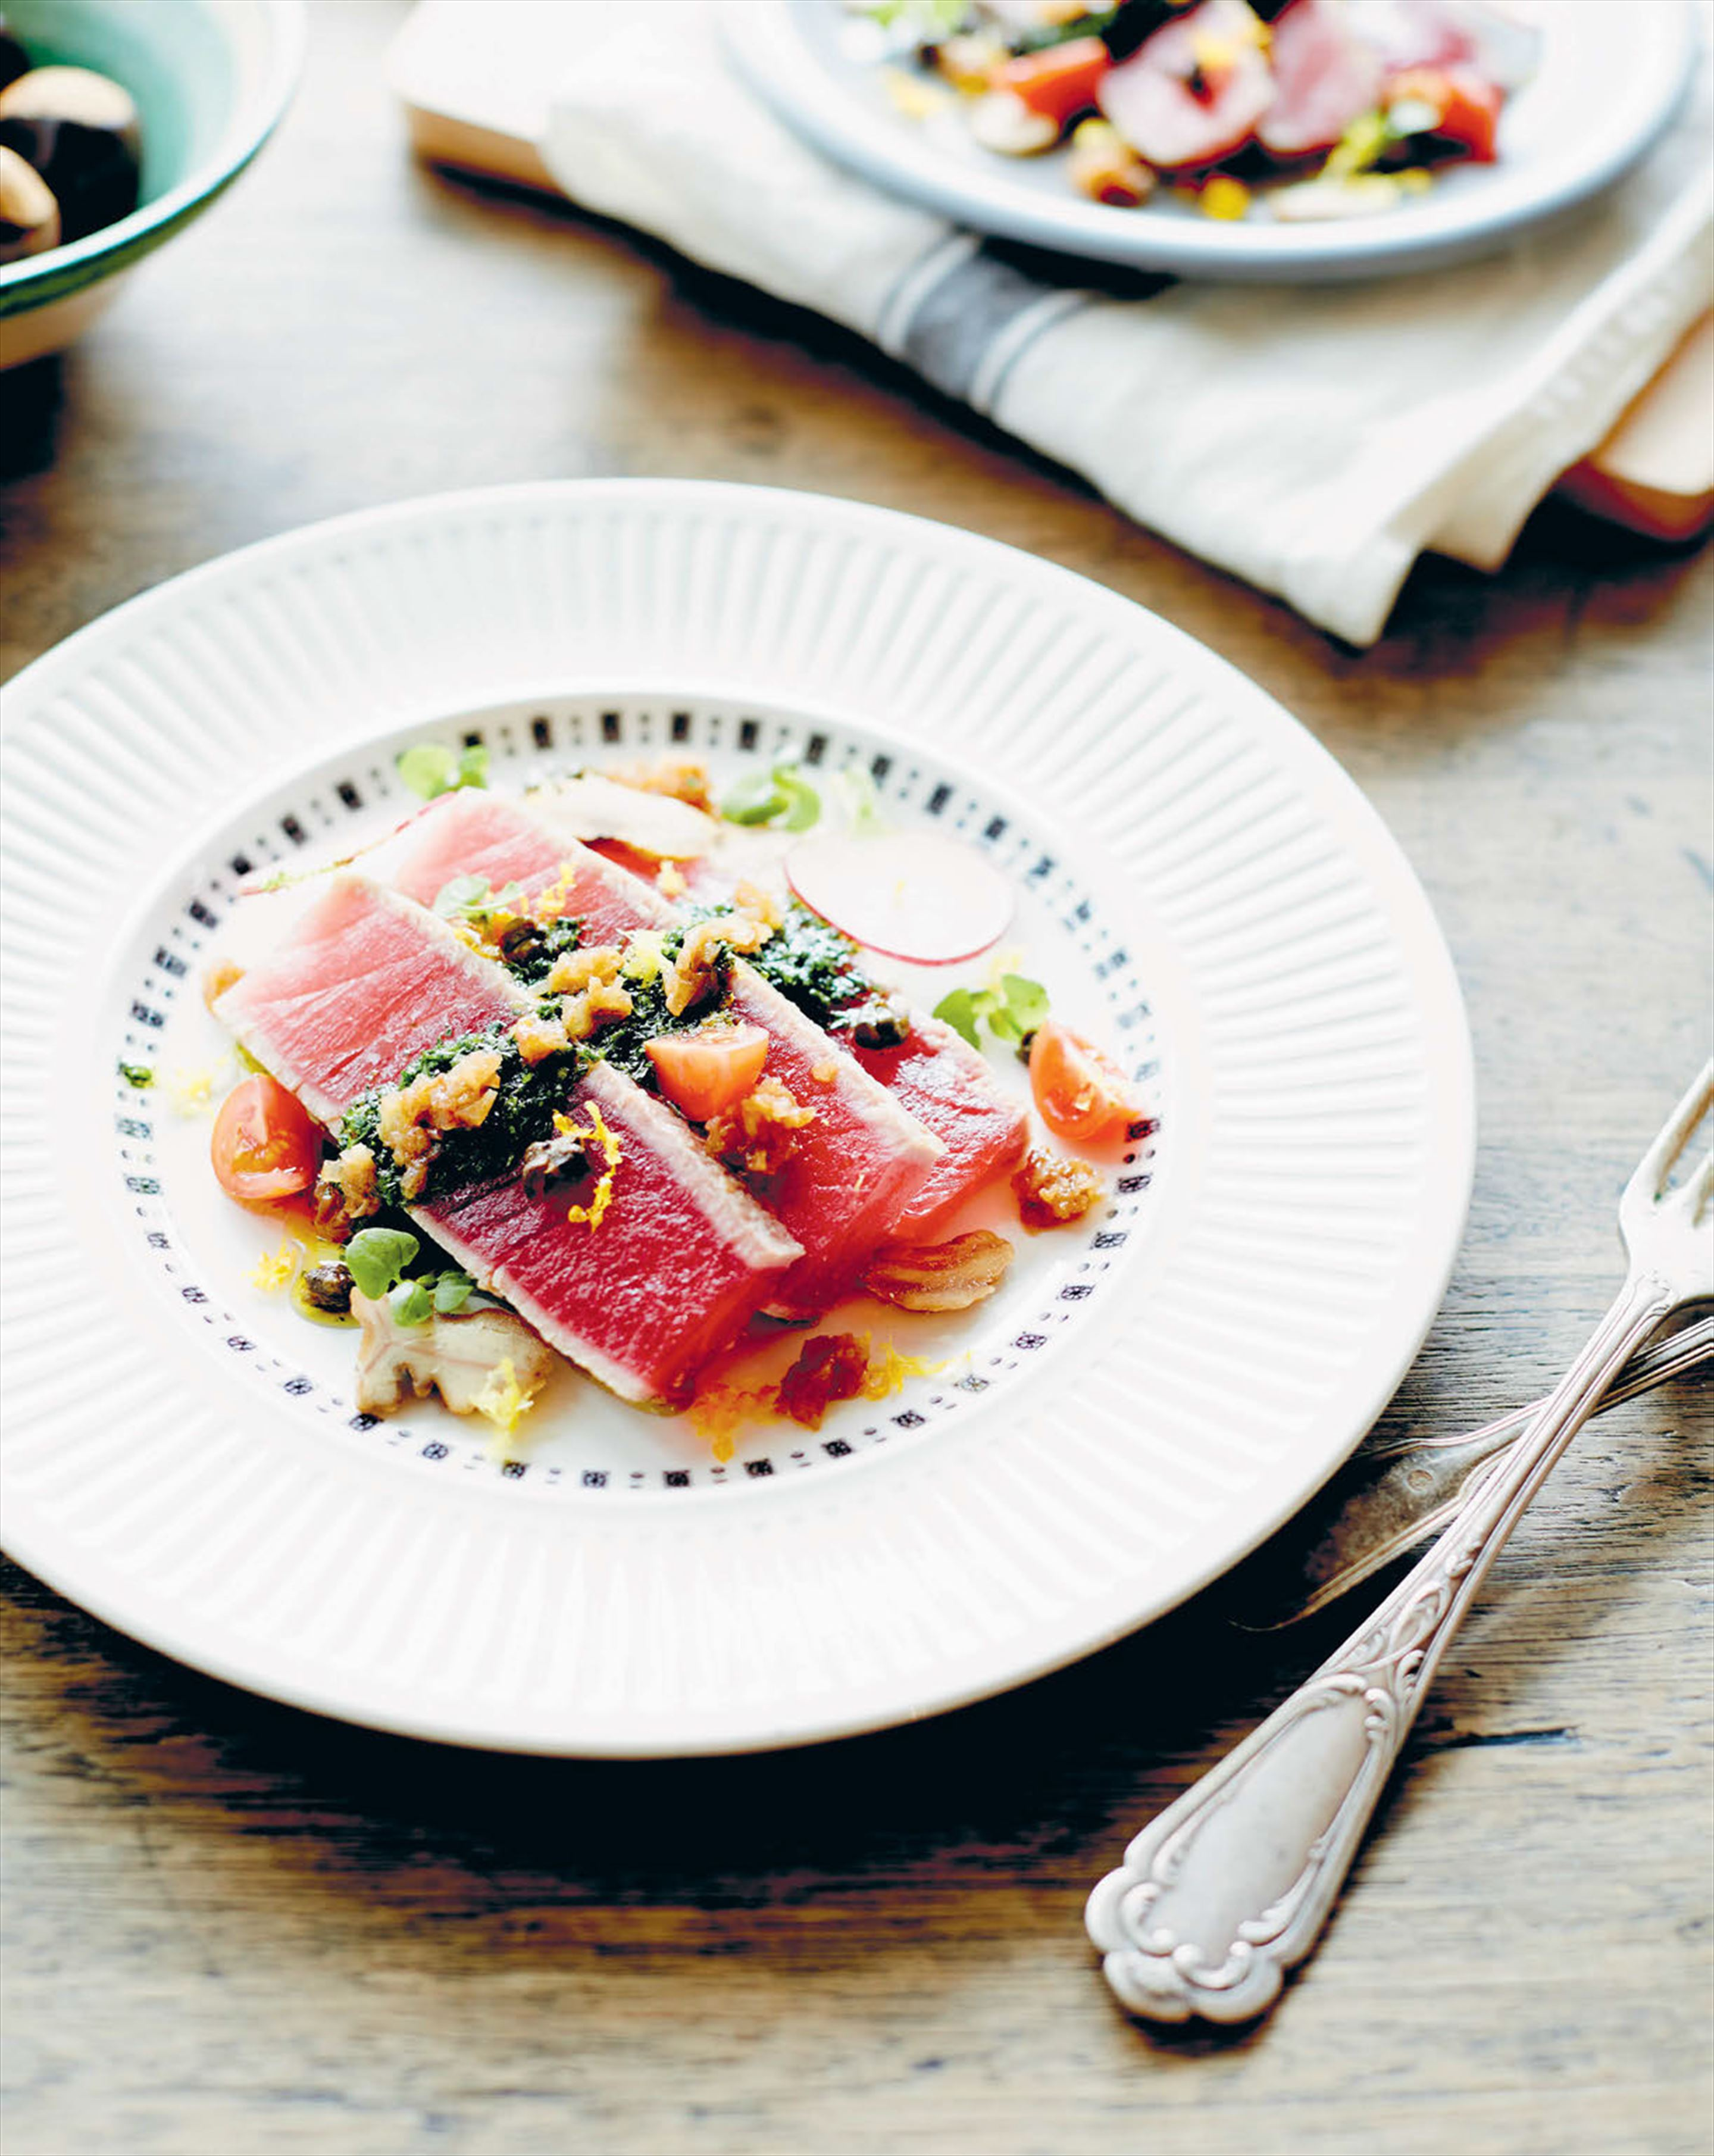 Seared yellowfin tuna with chestnuts and salsa verde